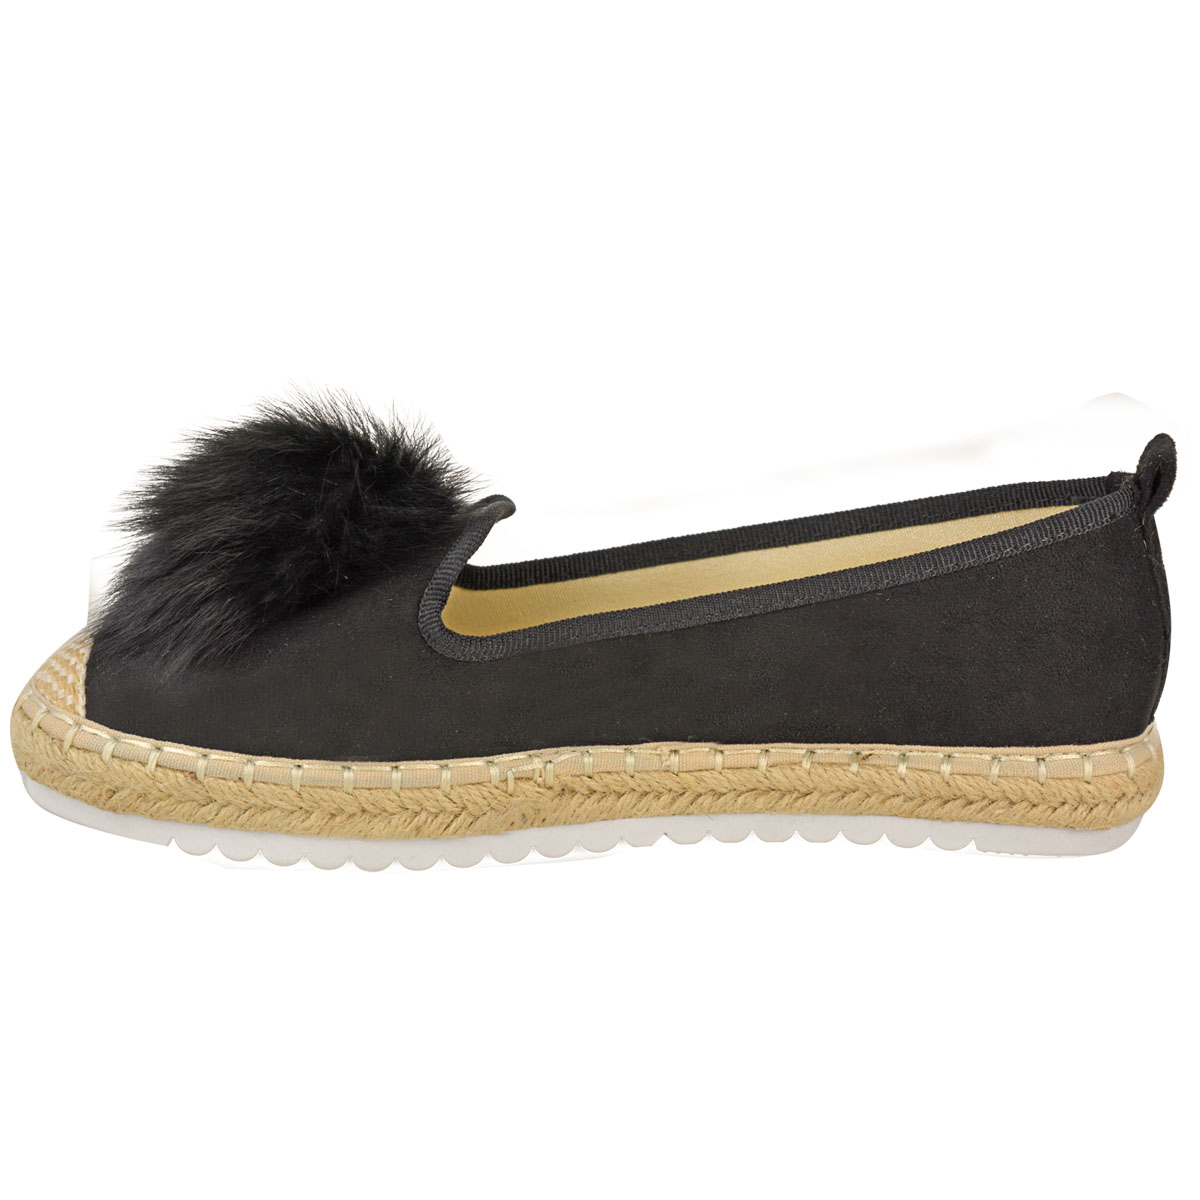 Womens-Ladies-Espadrilles-Flat-Pom-Pom-Sandals-Slip-On-Strappy-Comfy-Size-Shoes thumbnail 24